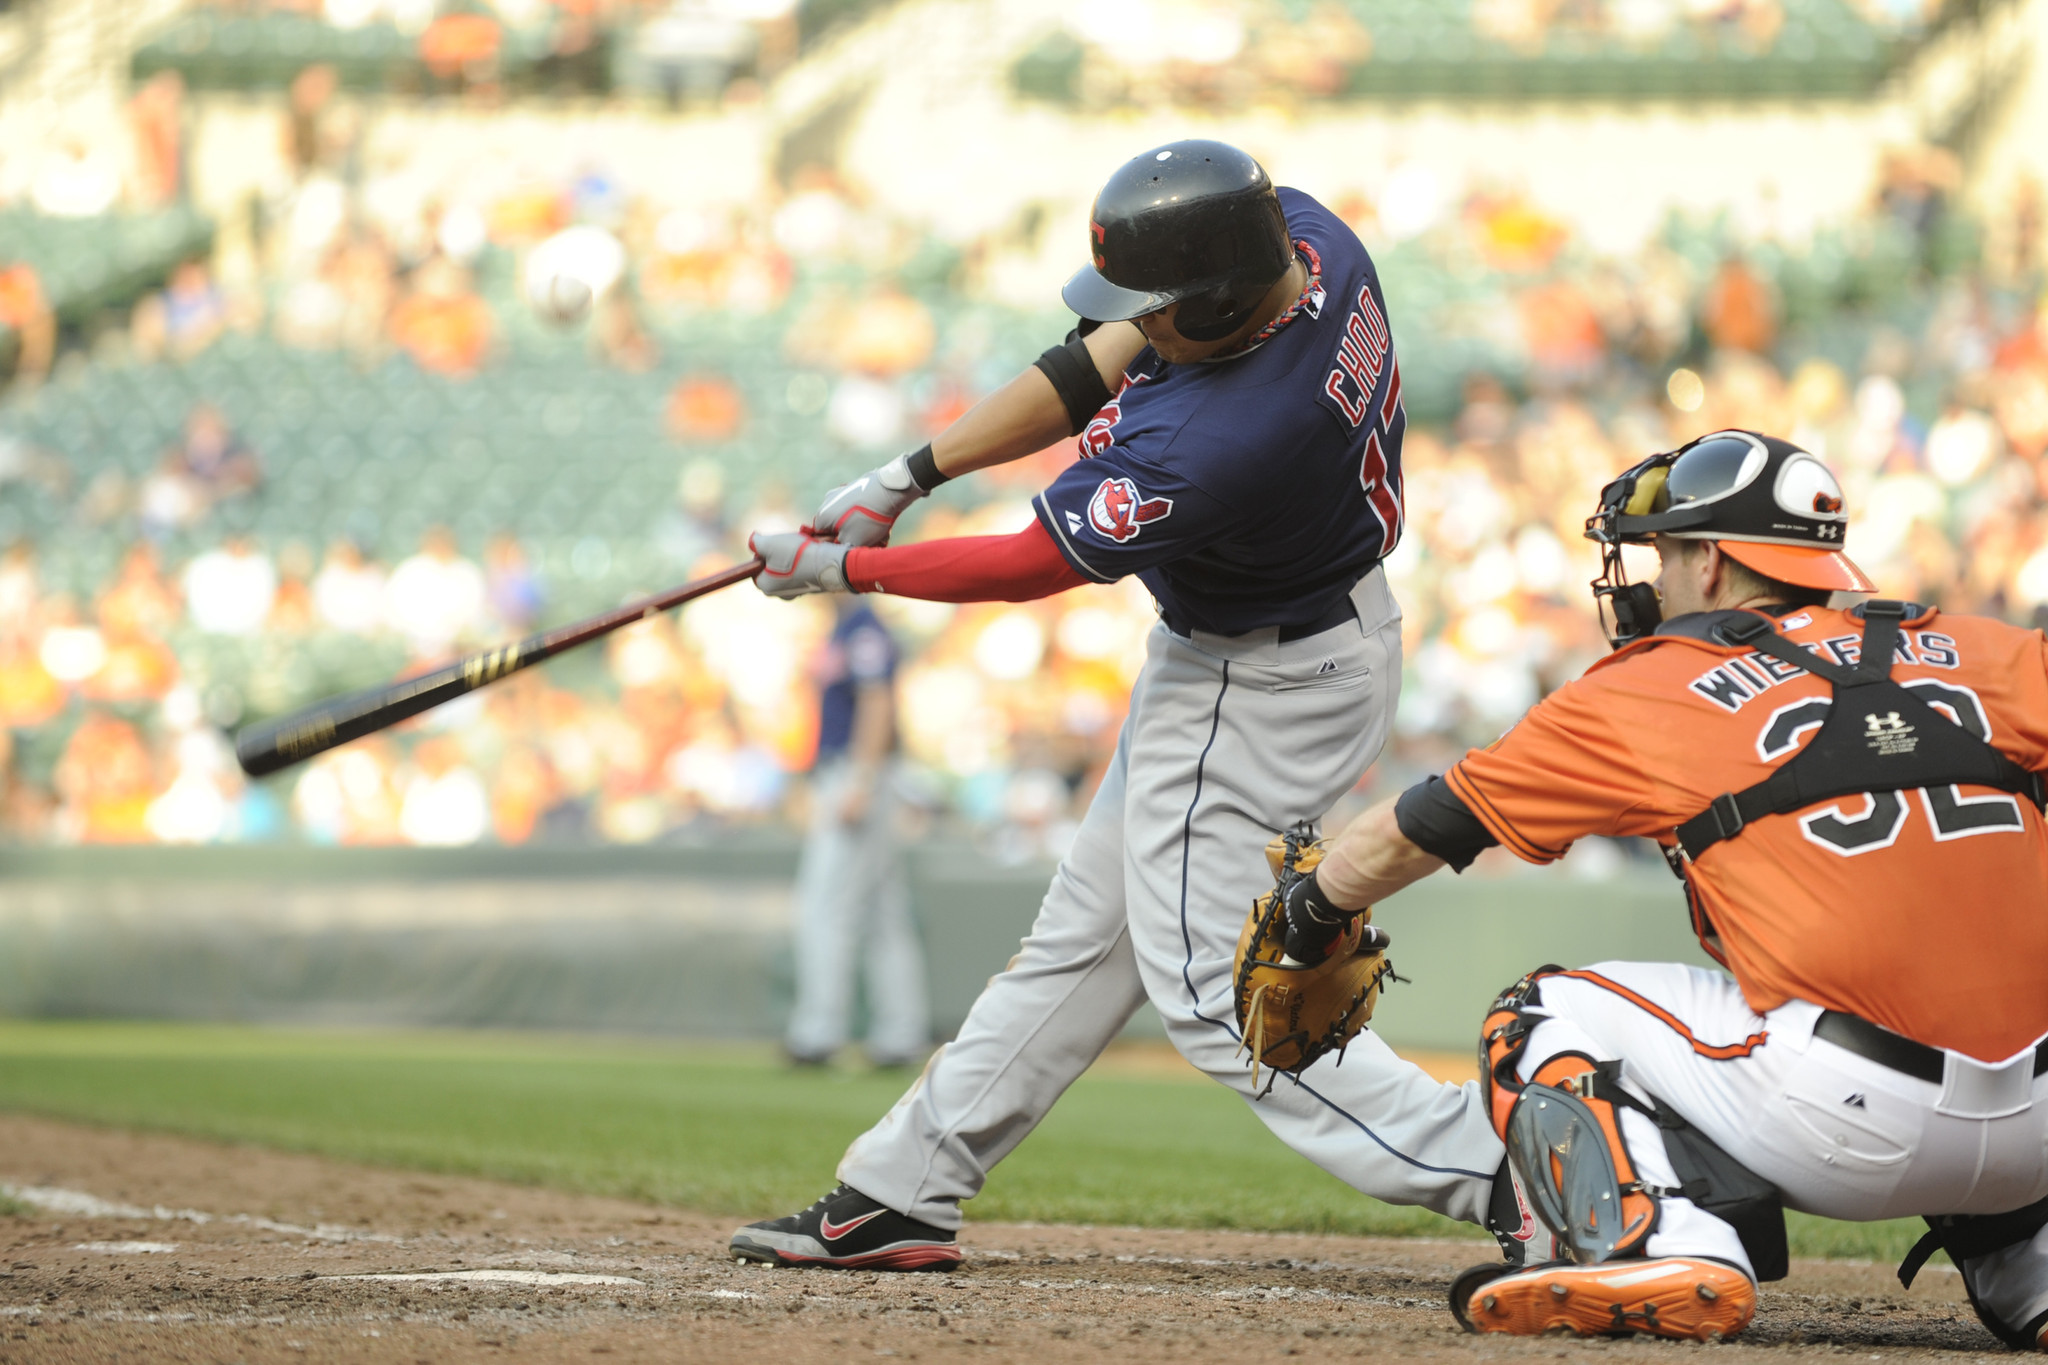 Cleveland Indians outfielder Shin-Soo Choo swings during the game at Camden Yards as Orioles catcher Matt Wieters awaits the pitch. Choo was 4-for-5 with four runs scored and three RBIs in the Indians' 11-5 victory.